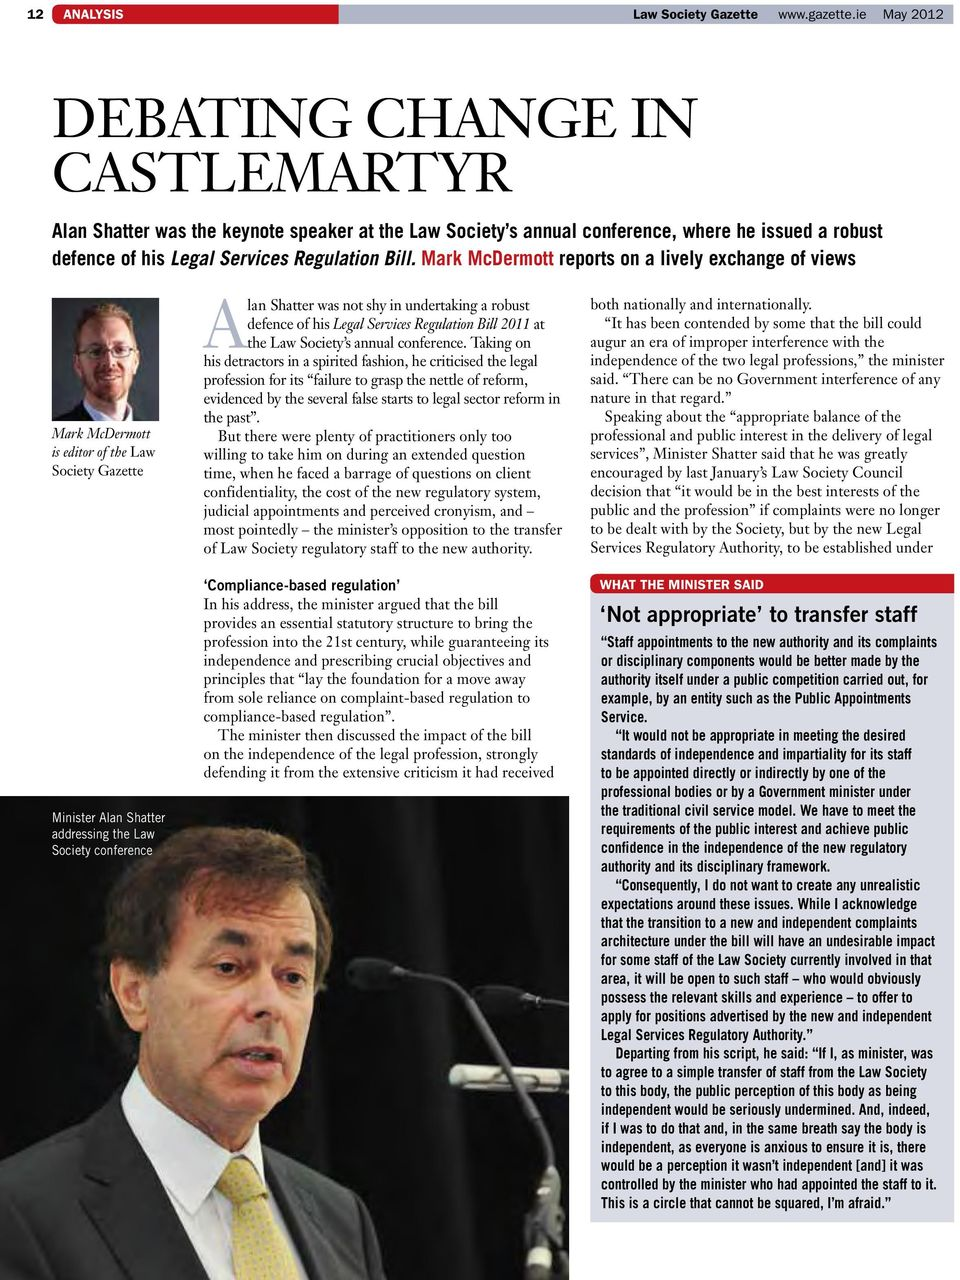 Mark McDermott reports on a lively exchange of views Mark McDermott is editor of the Law Society Gazette Minister Alan Shatter addressing the Law Society conference Alan Shatter was not shy in